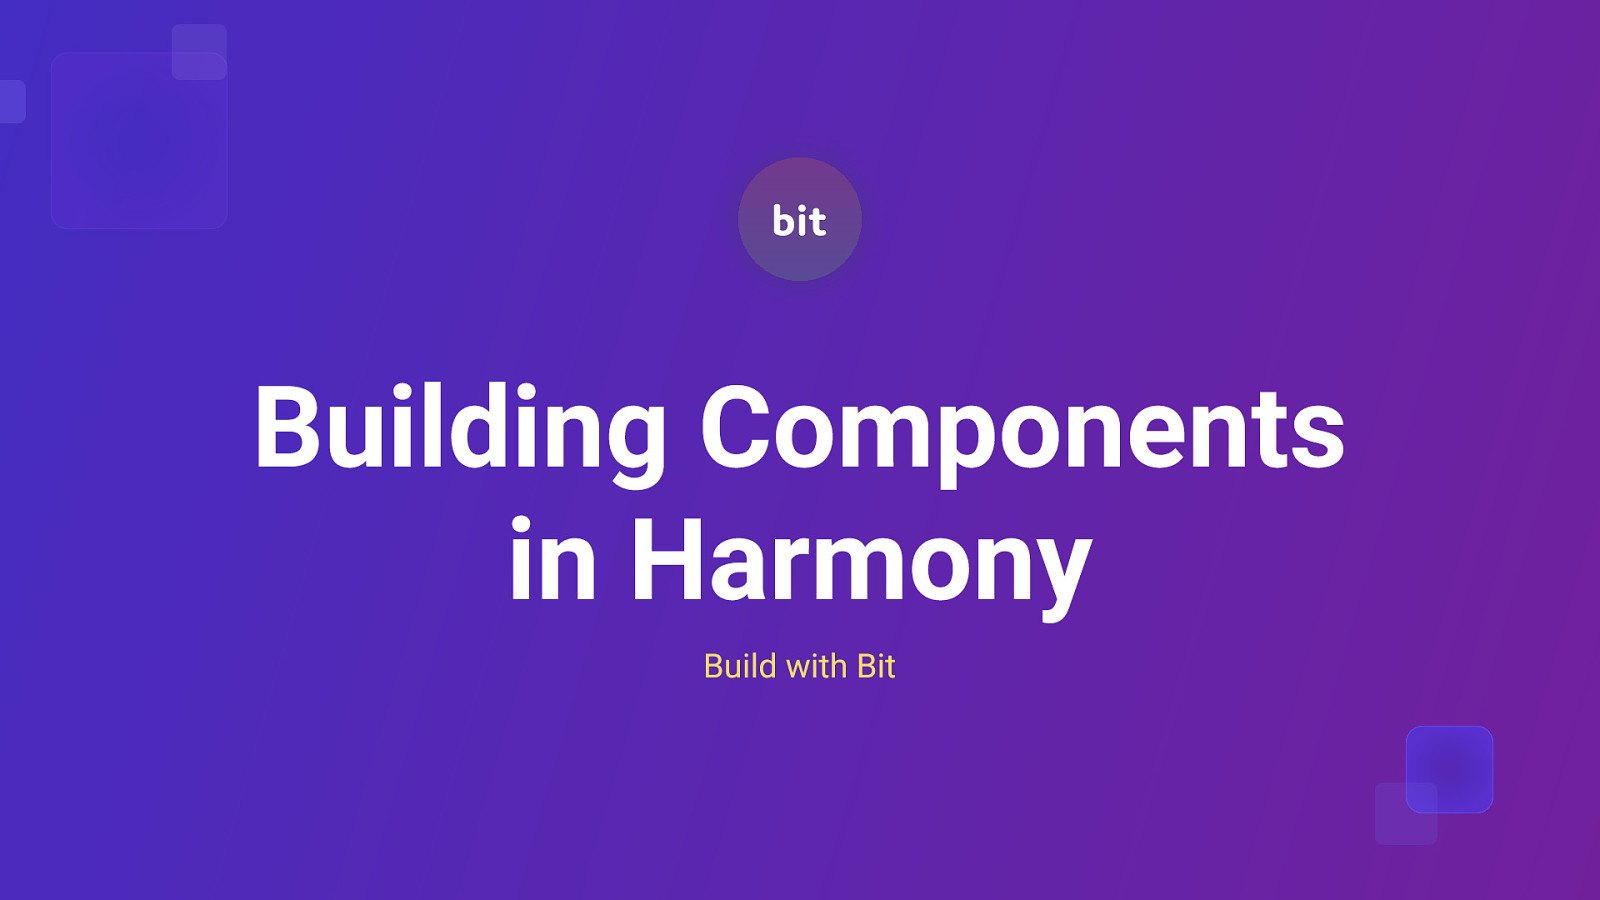 Building Components in Harmony